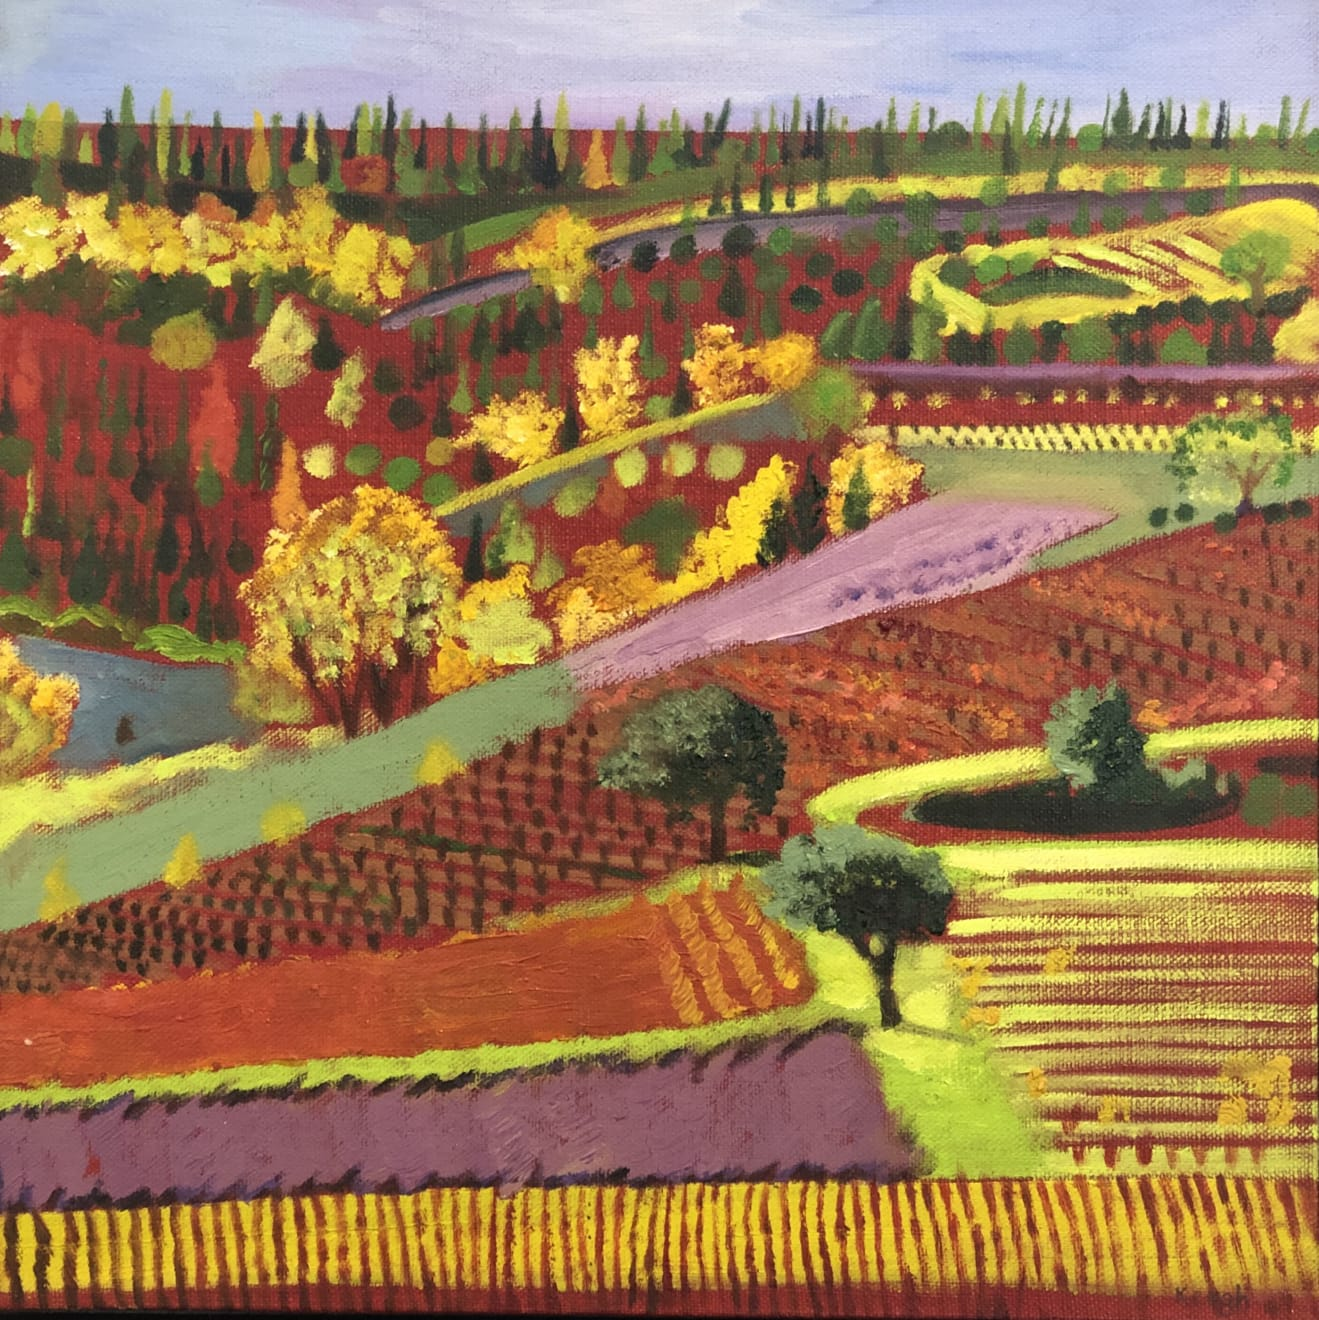 Karen Keogh, Vineyards, Corbieres